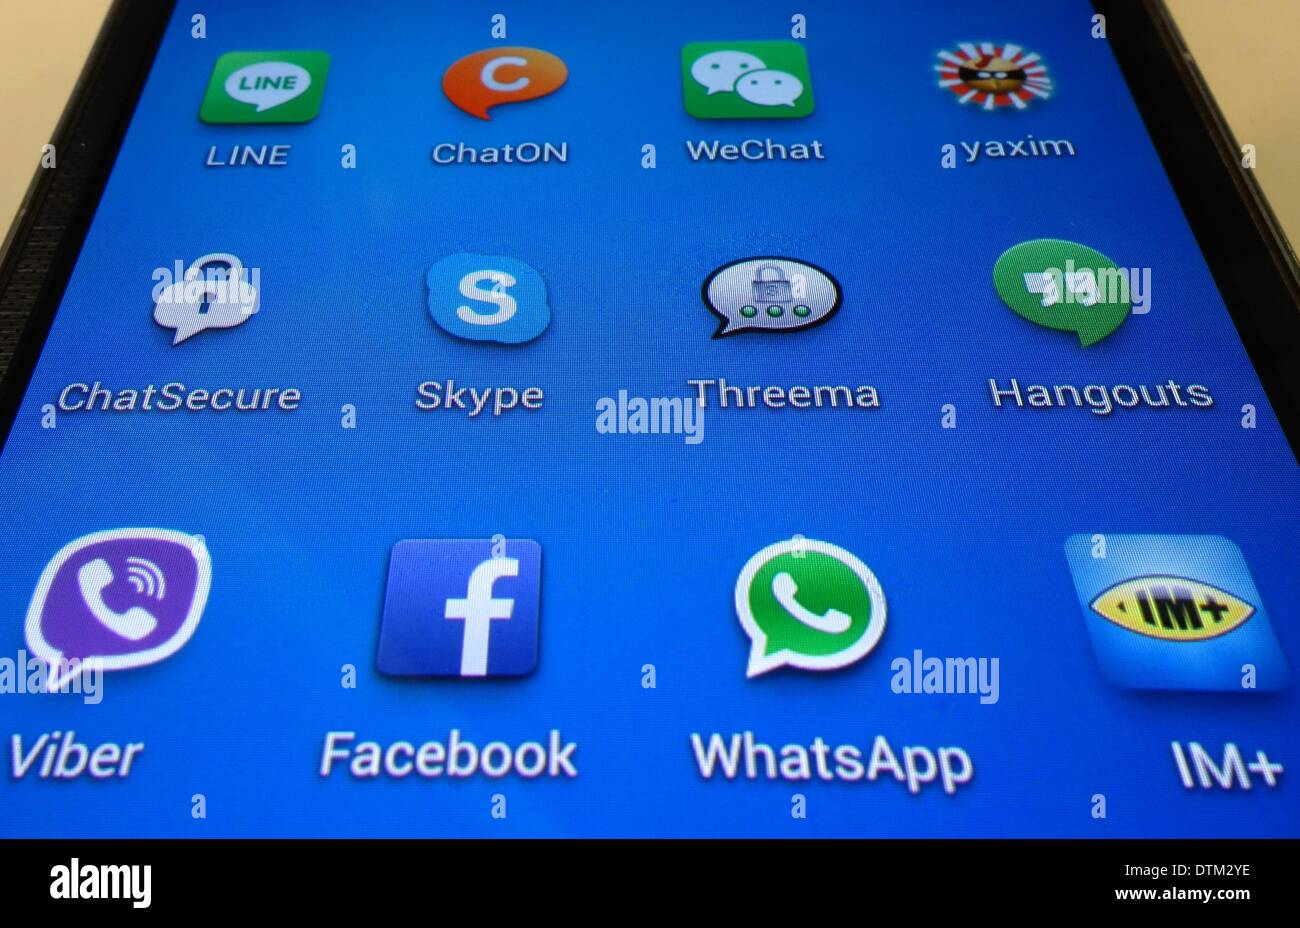 The apps (L, TOP-R, BOTTOM)Line, ChatOn, WeChat, Yaxim, ChatSecure, WhatsApp, Facebook, Hangouts, Threema, Skype, Viber and IM  are arranged on the display of a smartphone in Berlin, Germany, 20 February, 20 February 2014. Photo: Soeren Stache/dpa - Stock Image